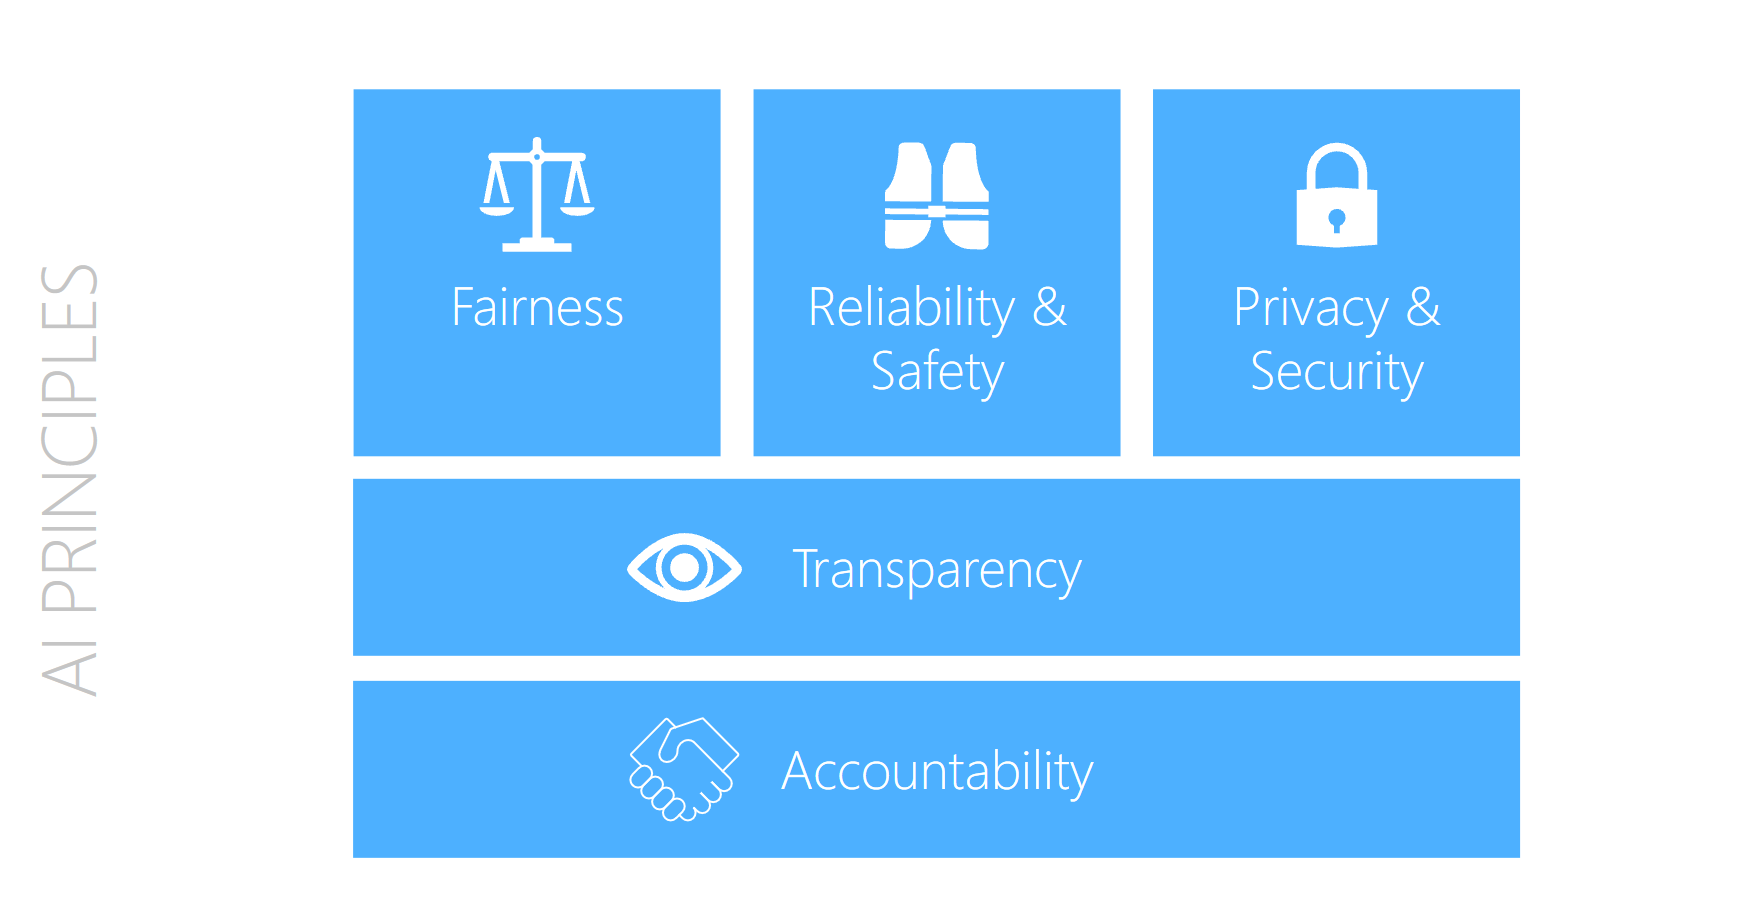 Visual showing Microsoft's ethical AI principles